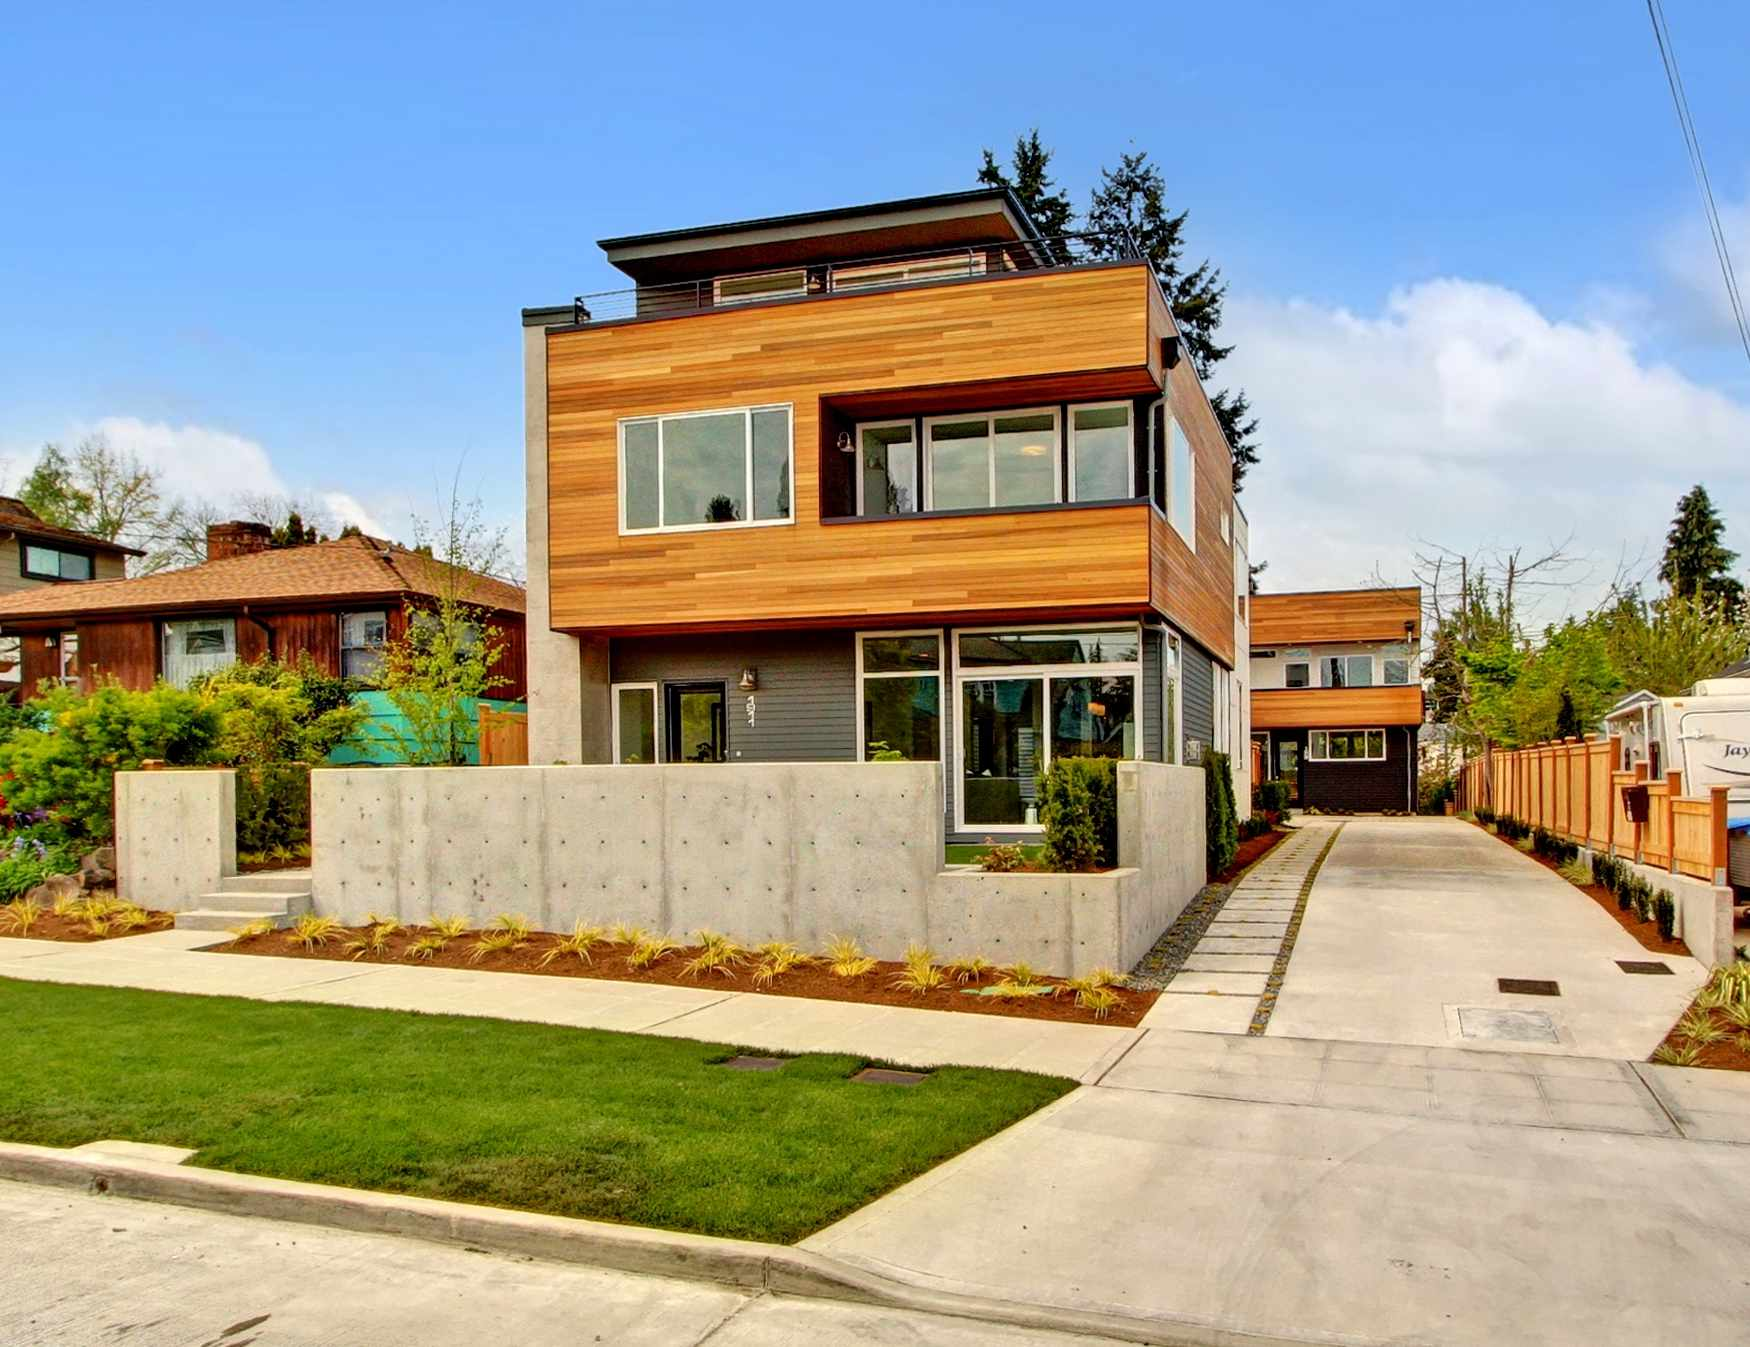 Best 40 seattle modern homes design ideas of seattle for New home builders in seattle area